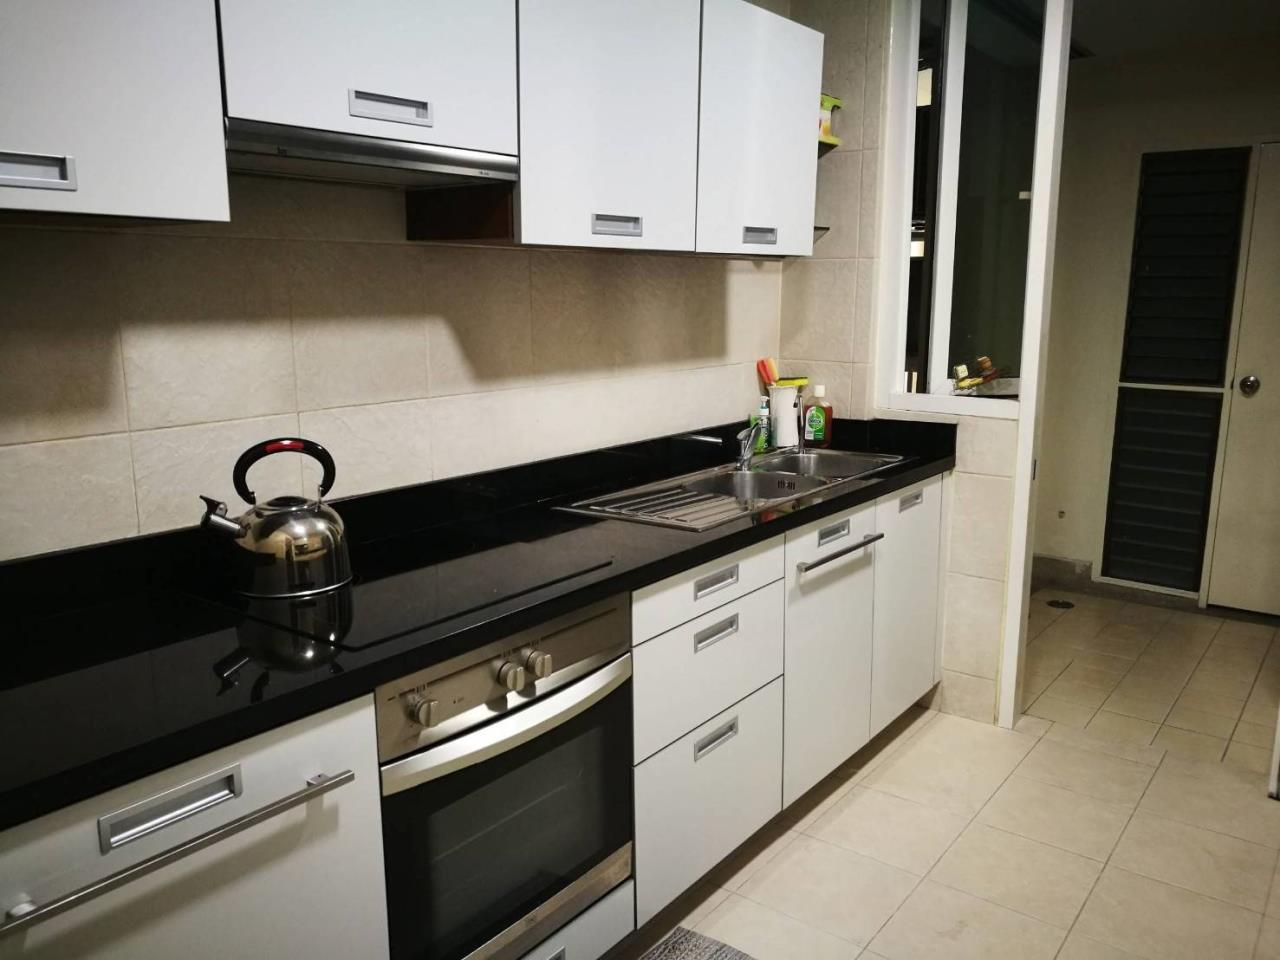 Bestbkkcondos Agency's Wilshire Condo Sukhumvit 22 - 140 SQ.M - for rent: 70,000 THB - 2 bedrooms, 2 bathrooms 7